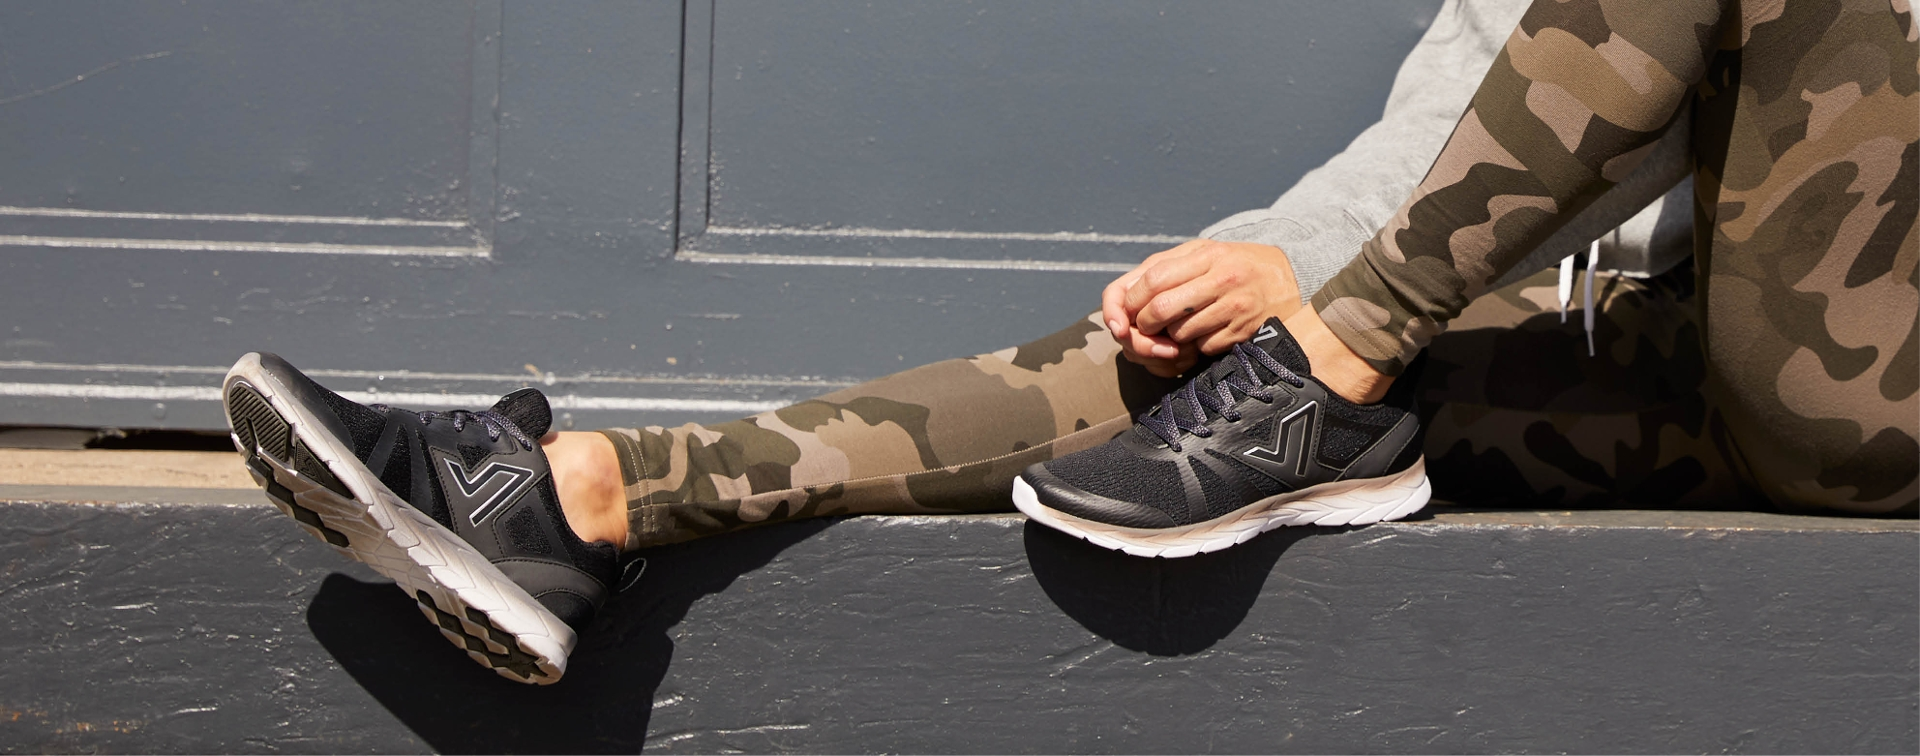 girl sitting on a wall with legs out wearing camo pants an a black pair of shoes in